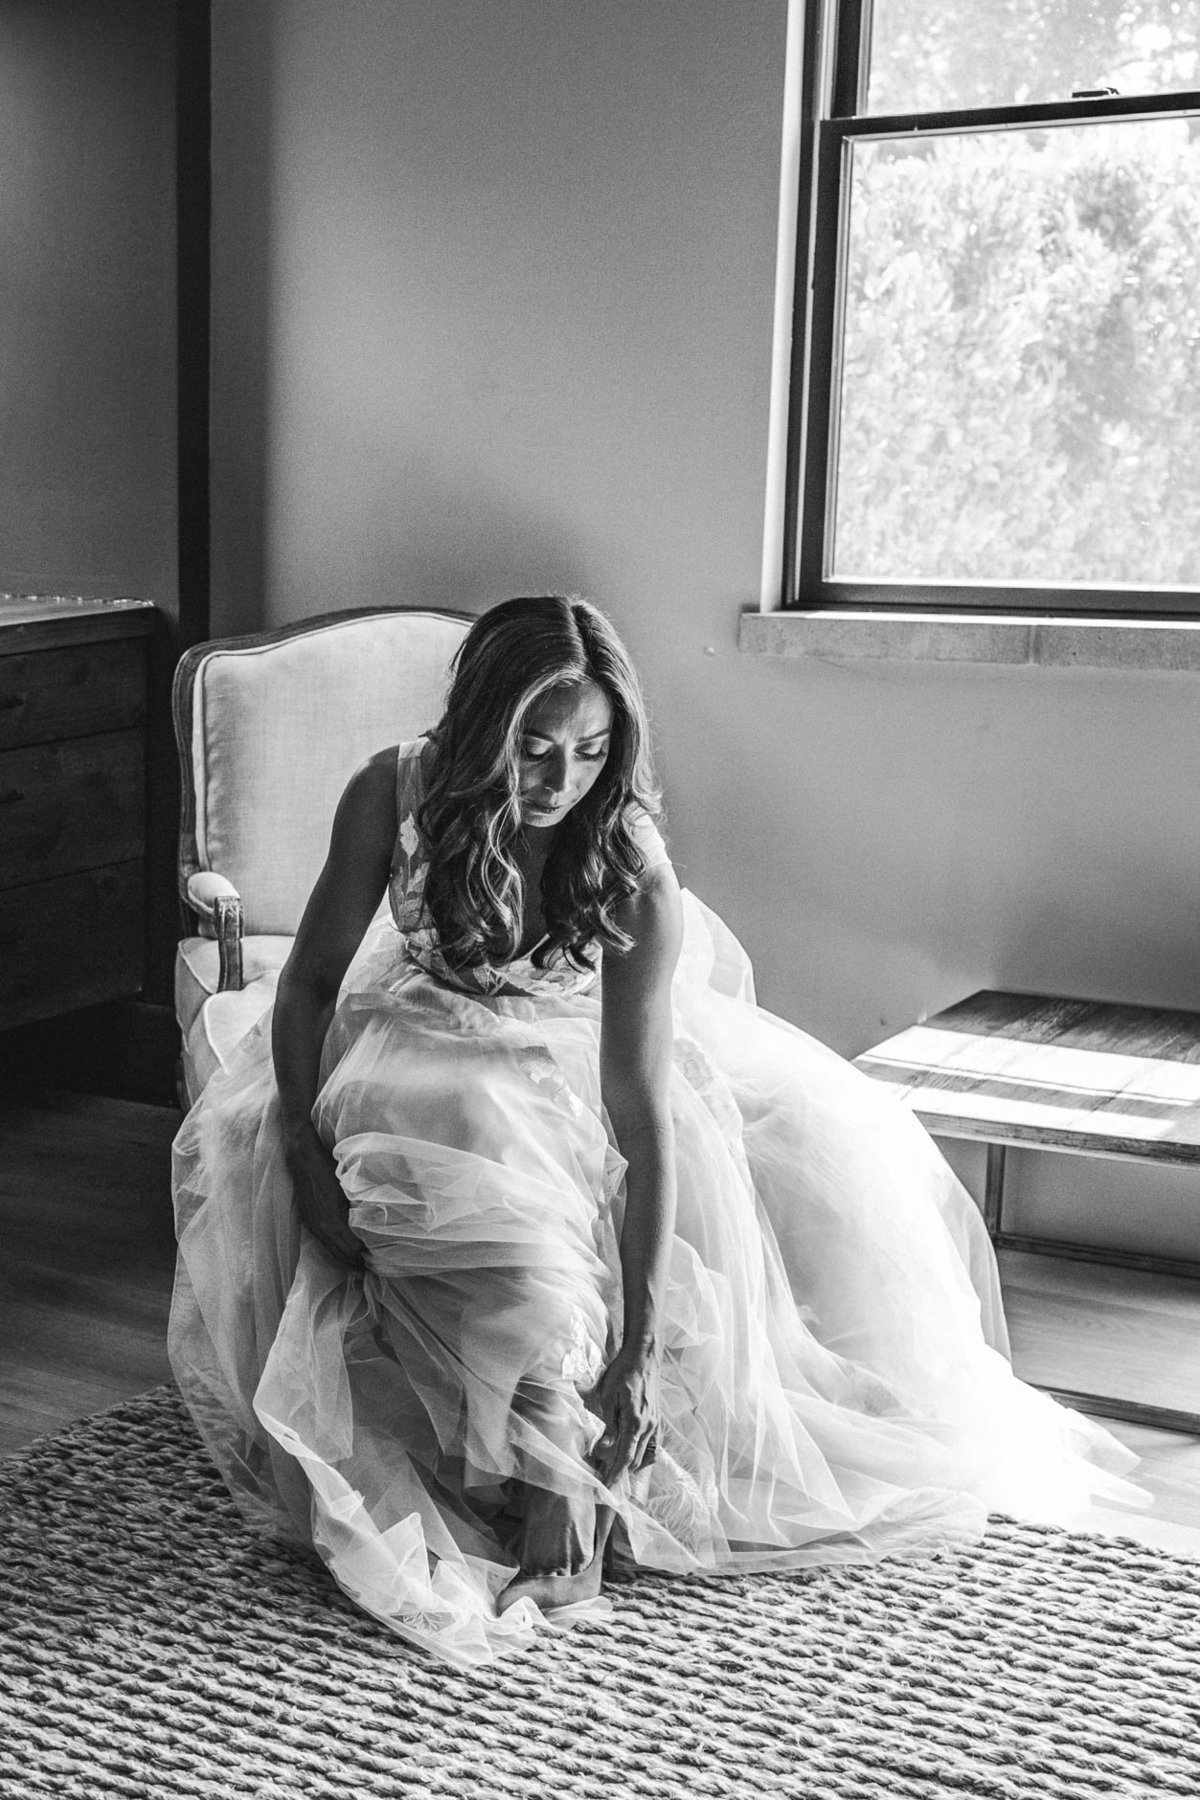 san-francisco-wedding-photographer-alice-che-photography-20